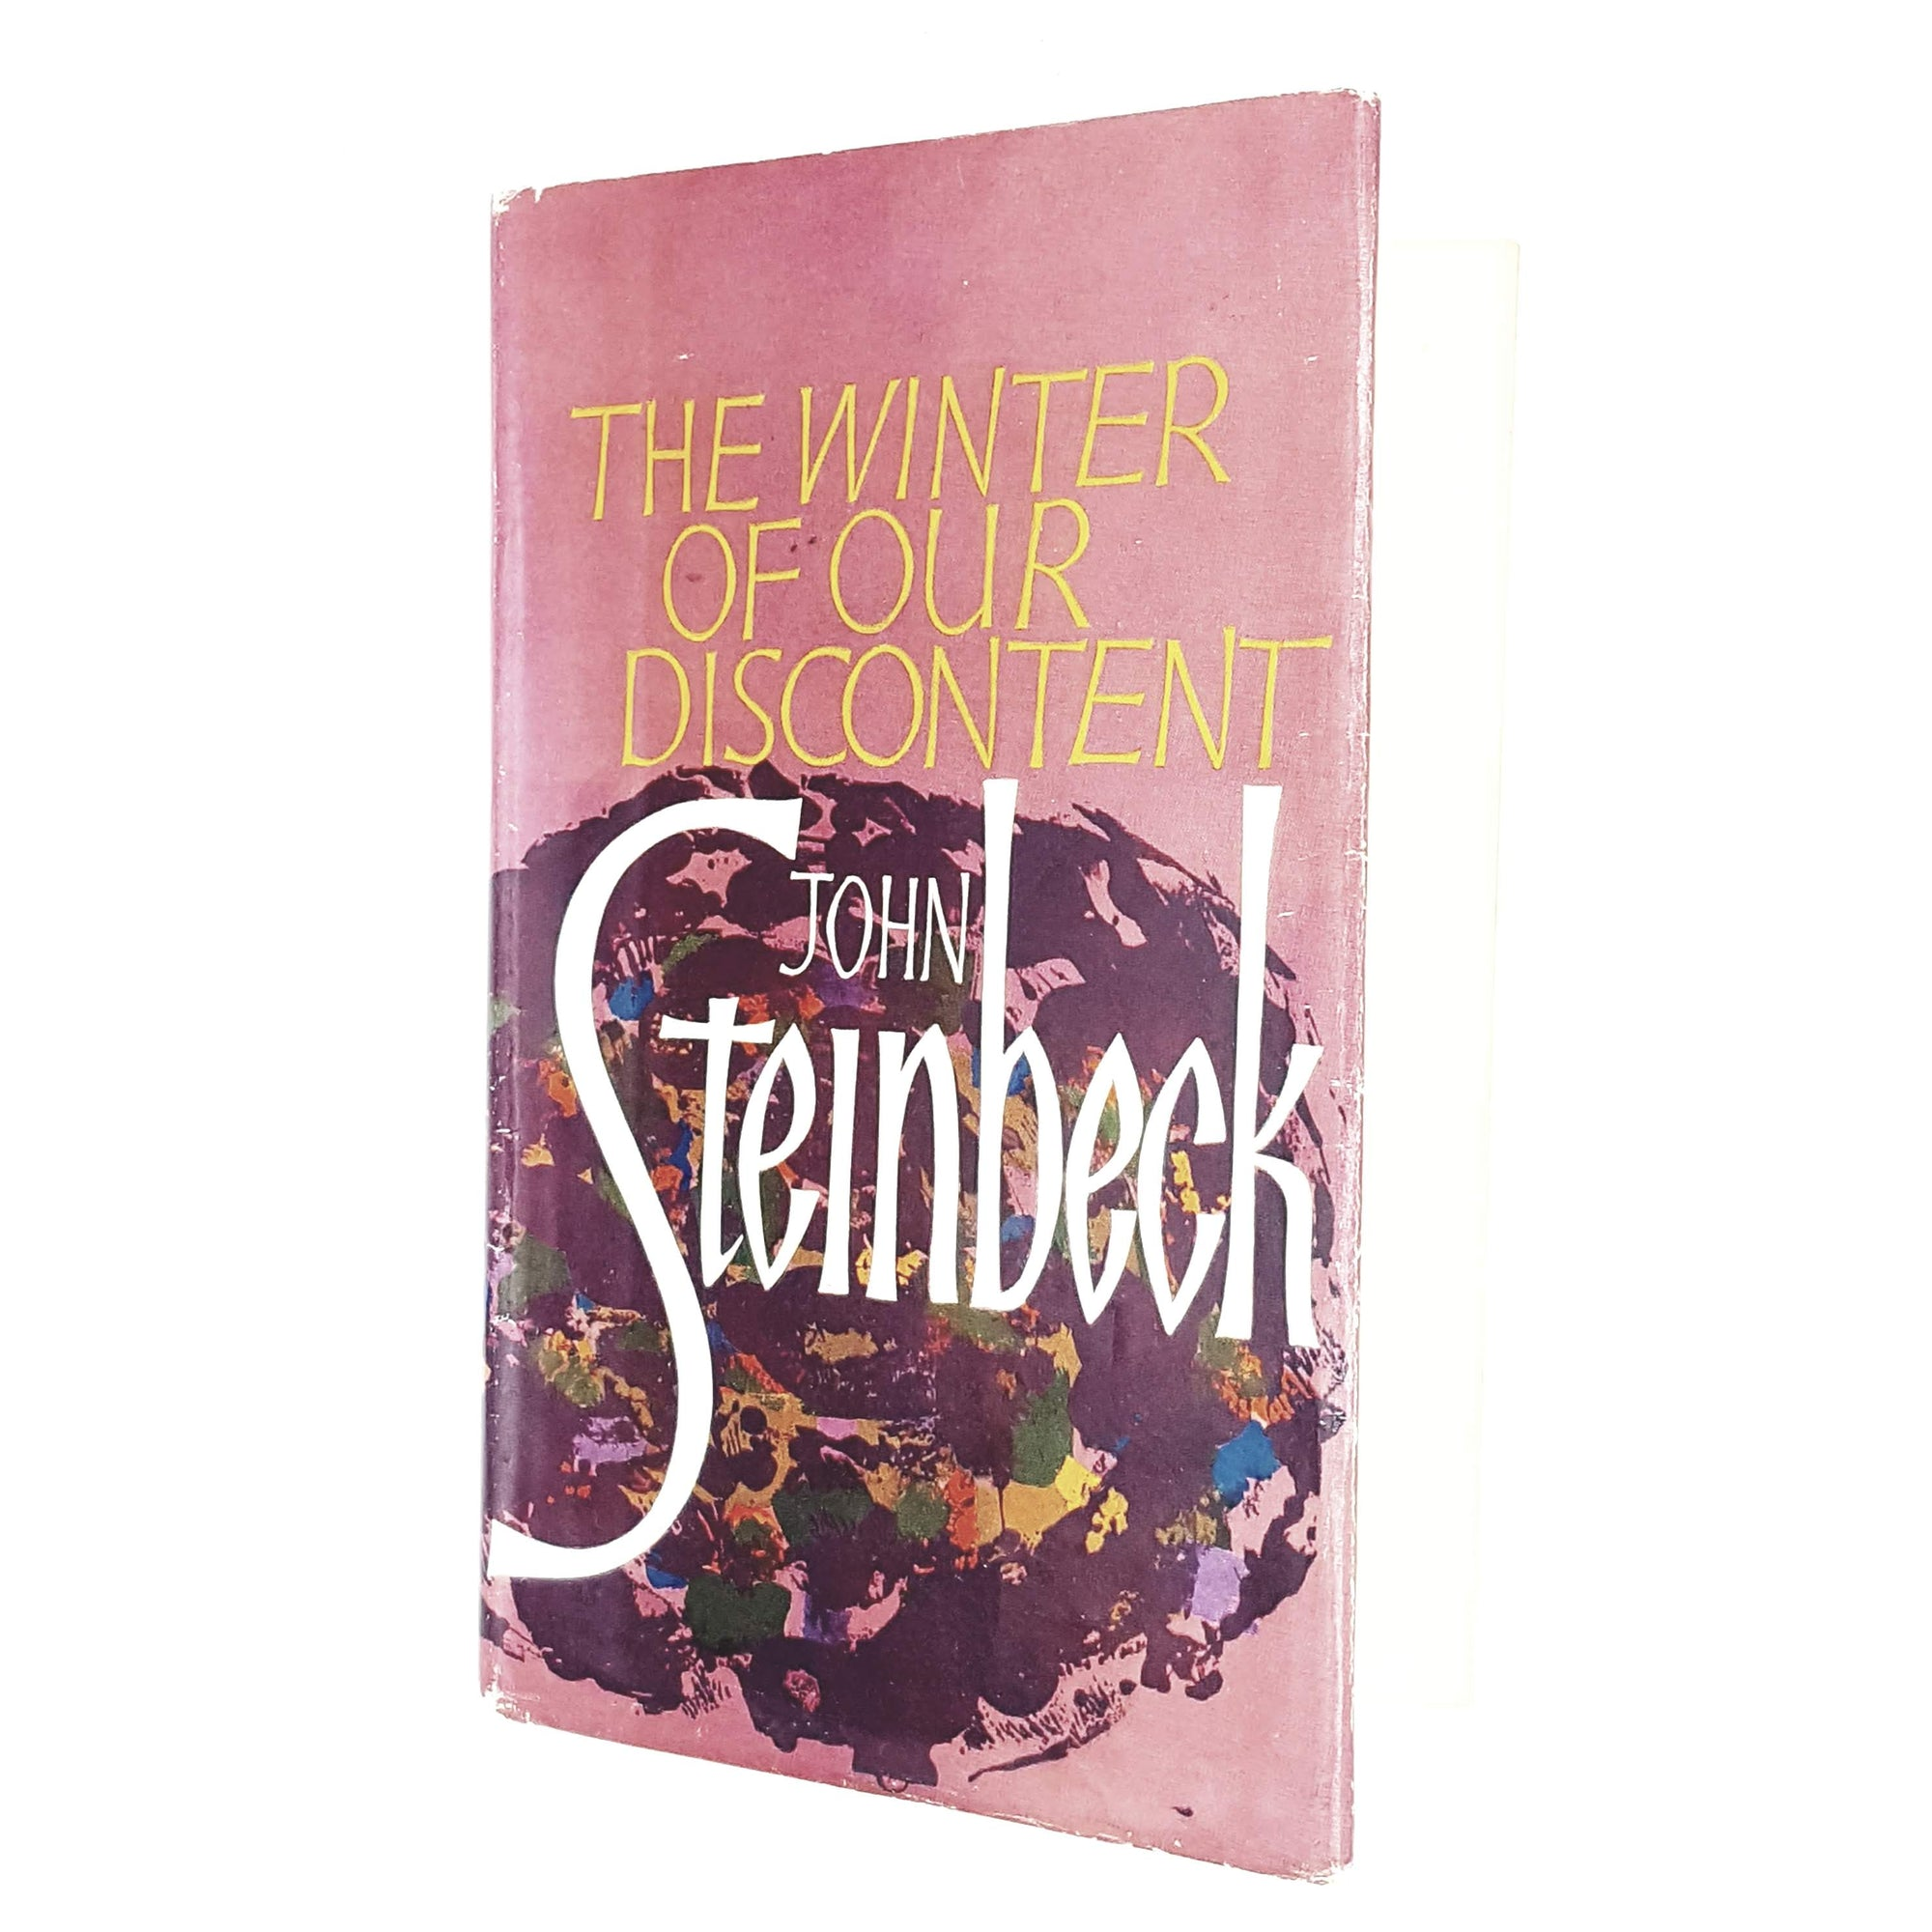 First Edition John Steinbeck's The Winter of Our Discontent 1961